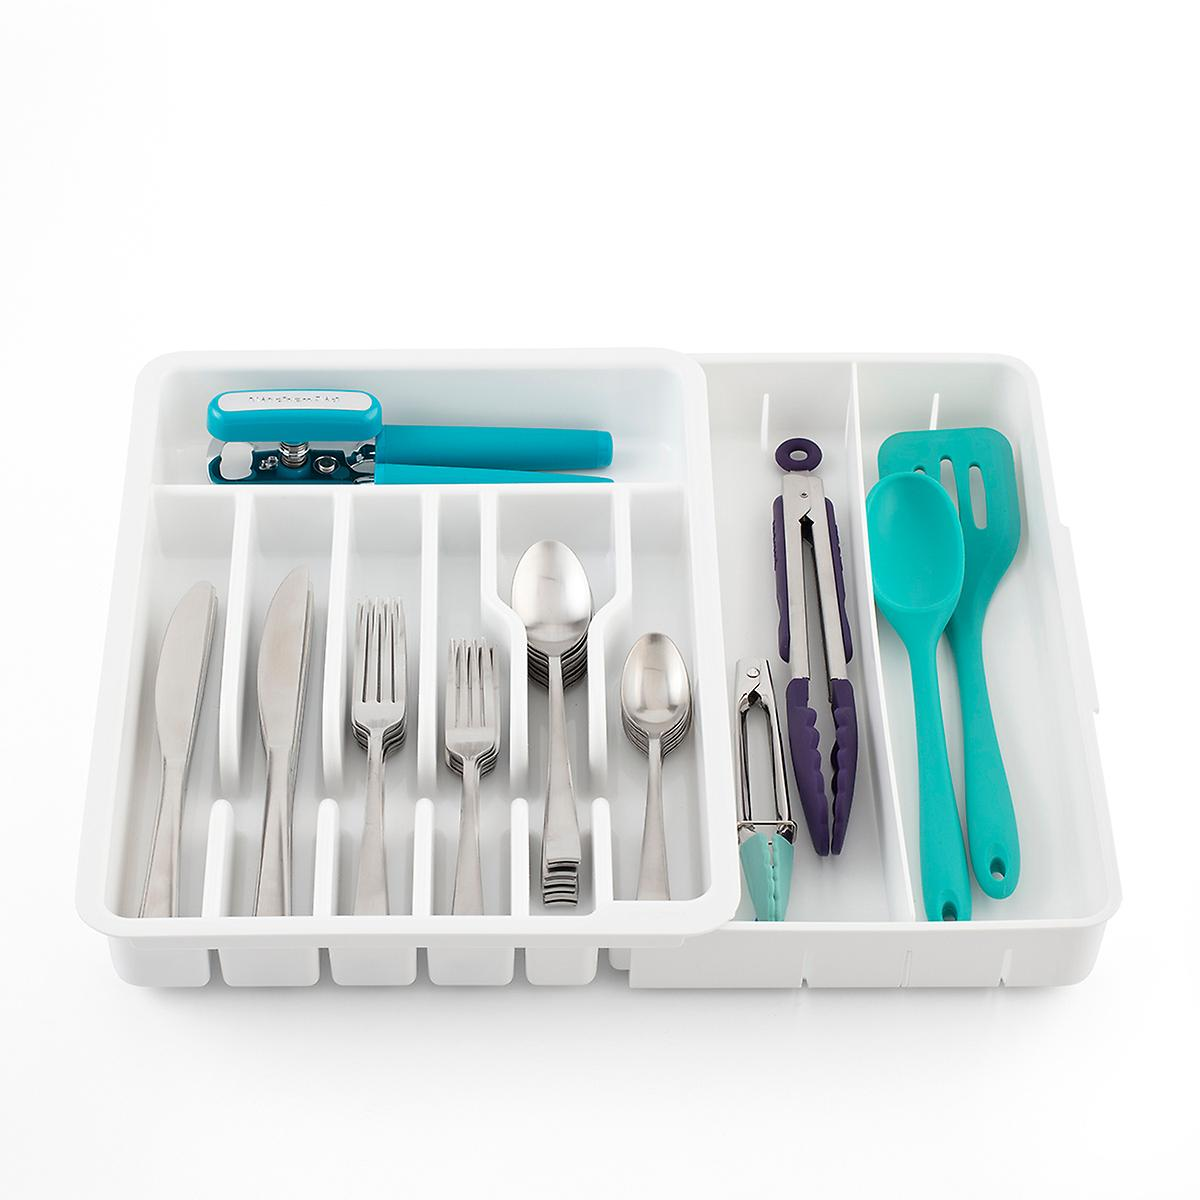 YouCopia DrawerFit Explandable Utensil Organizer